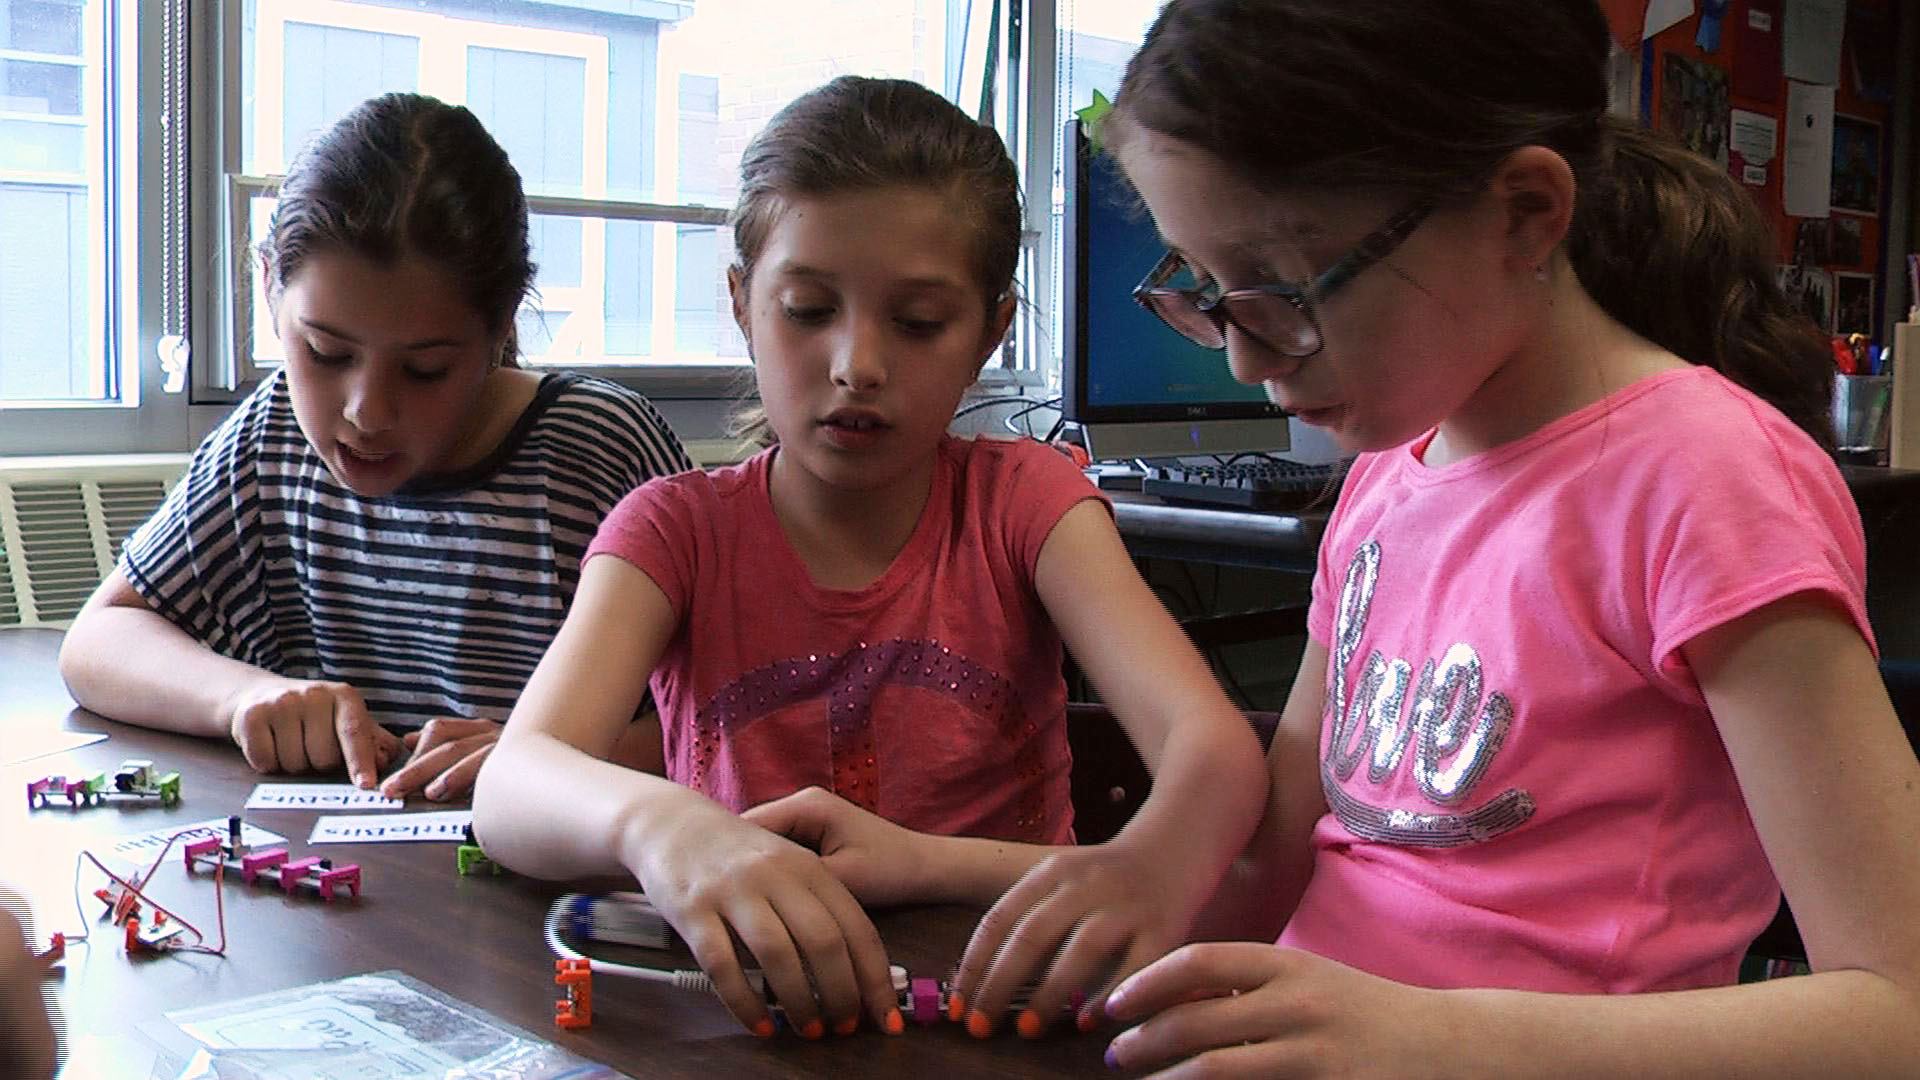 Three girls working together to create a simple circuit